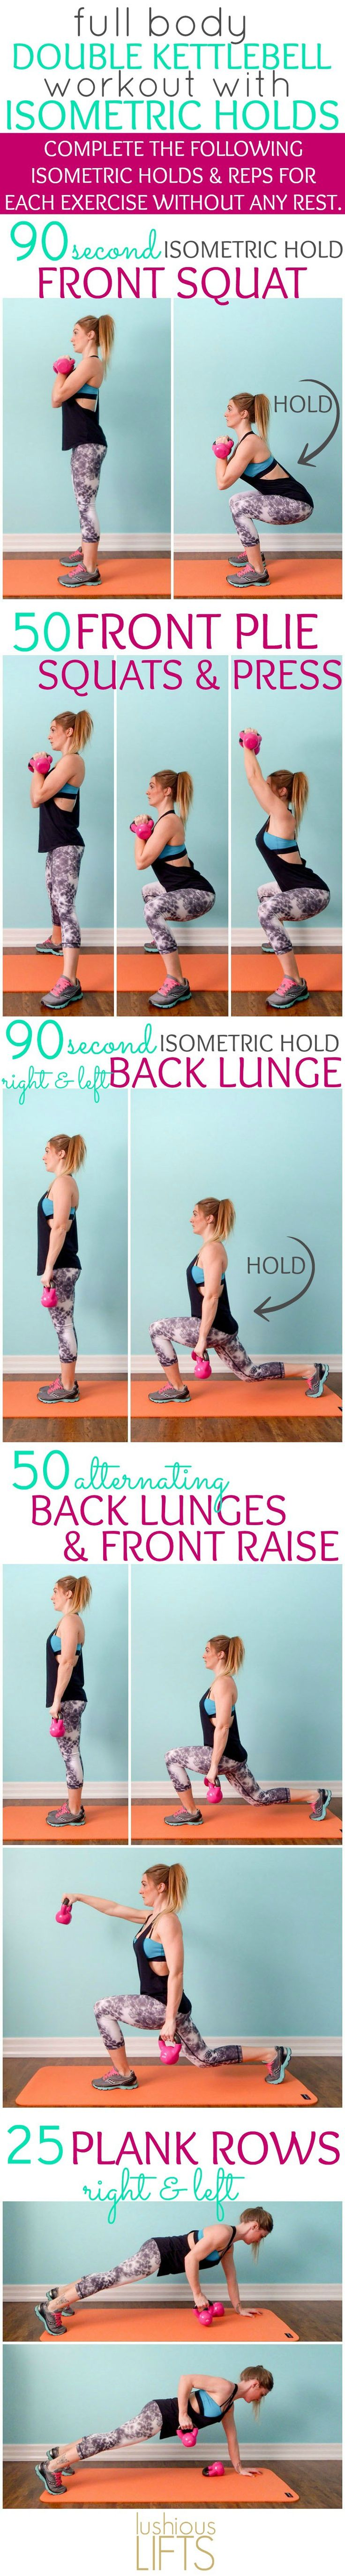 Full Body Double Kettlebell Workout with Isometric Holds; this workout really makes the lower body muscles burn!!!